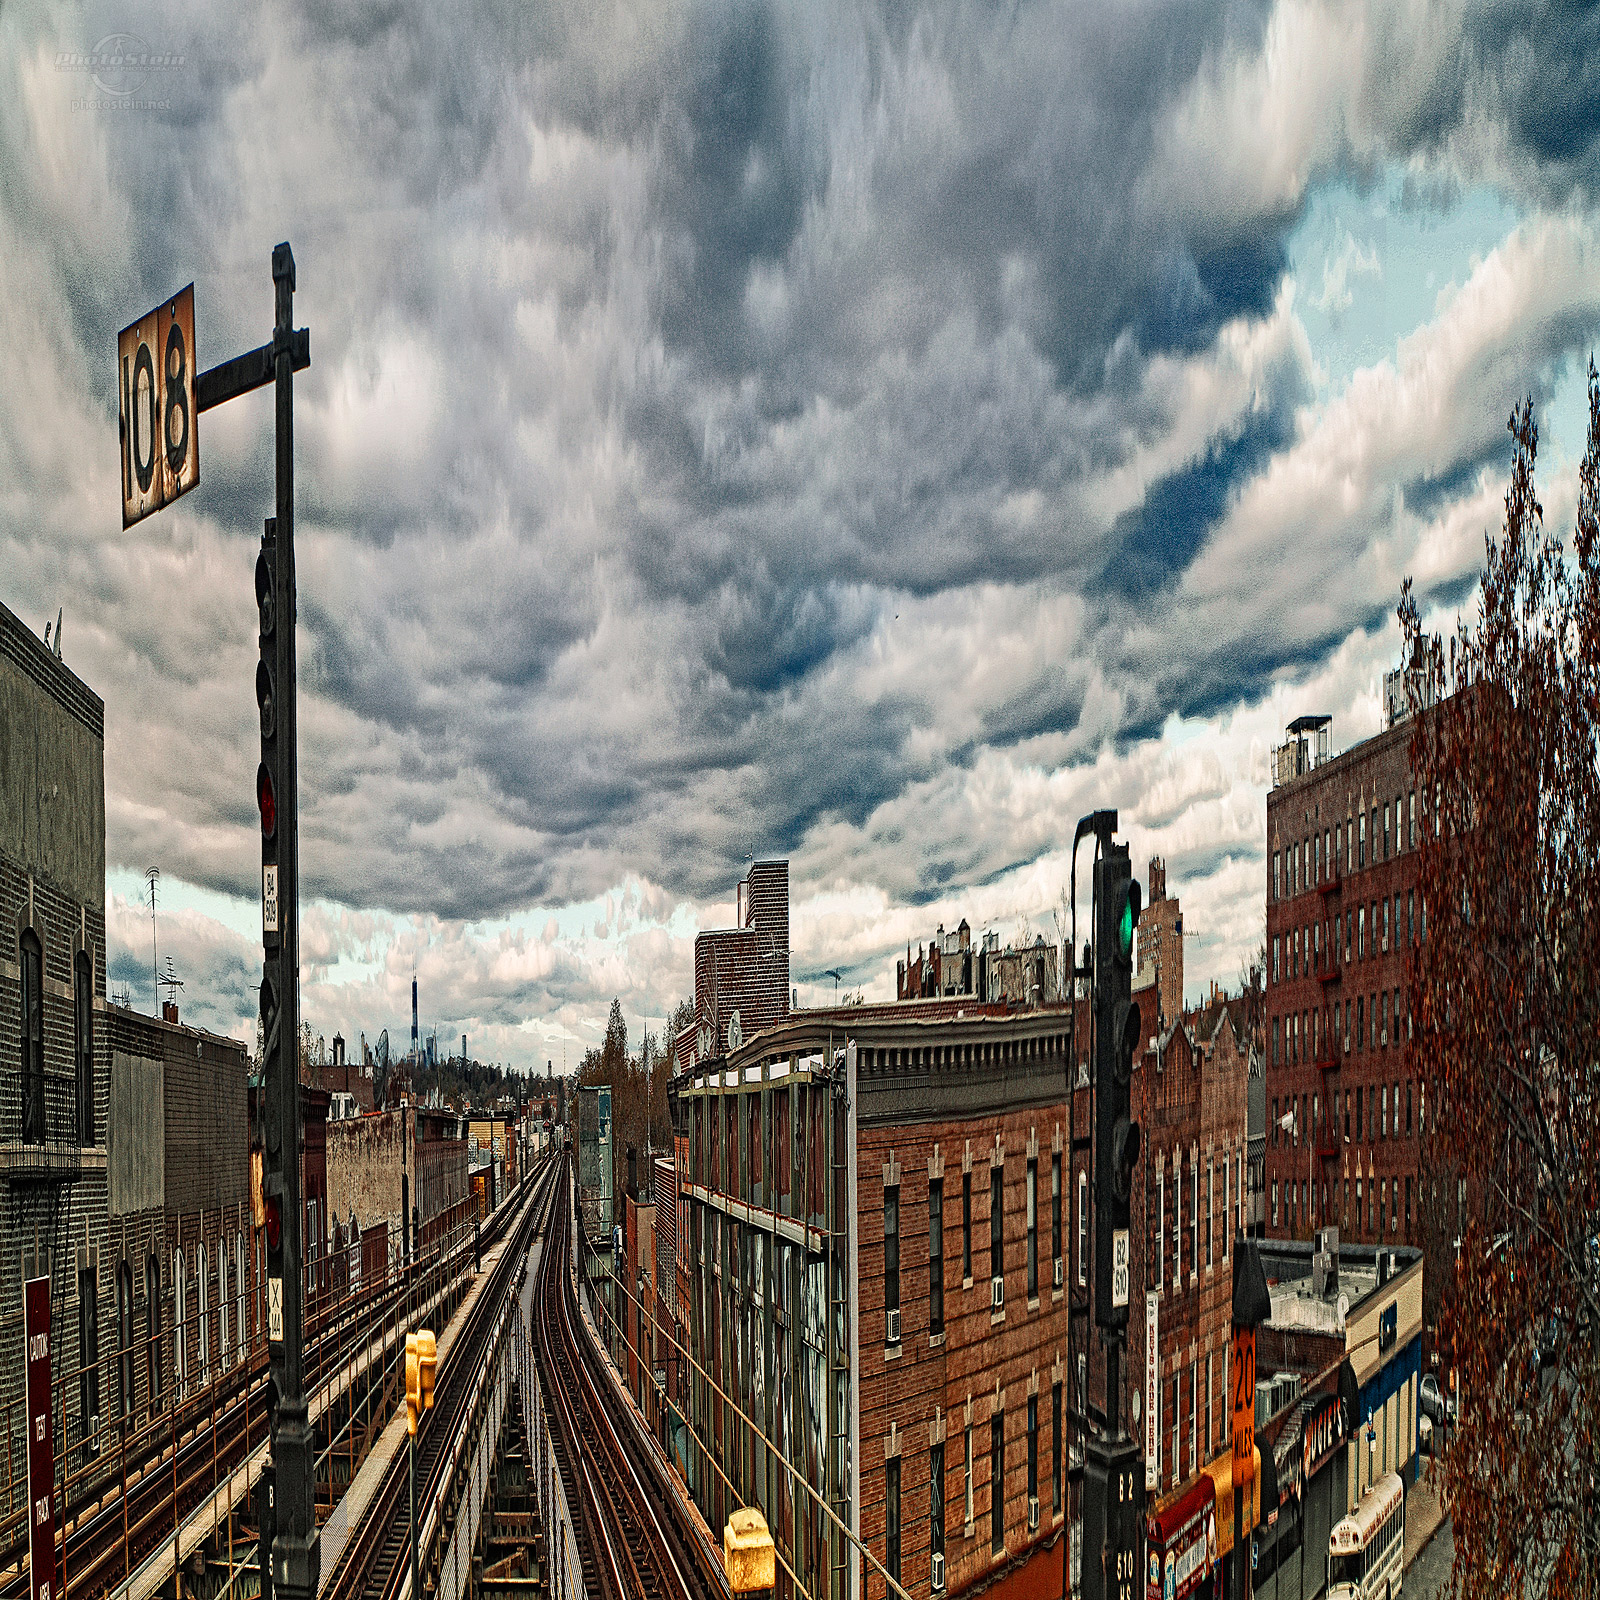 subwaytrucks_clouds_1600